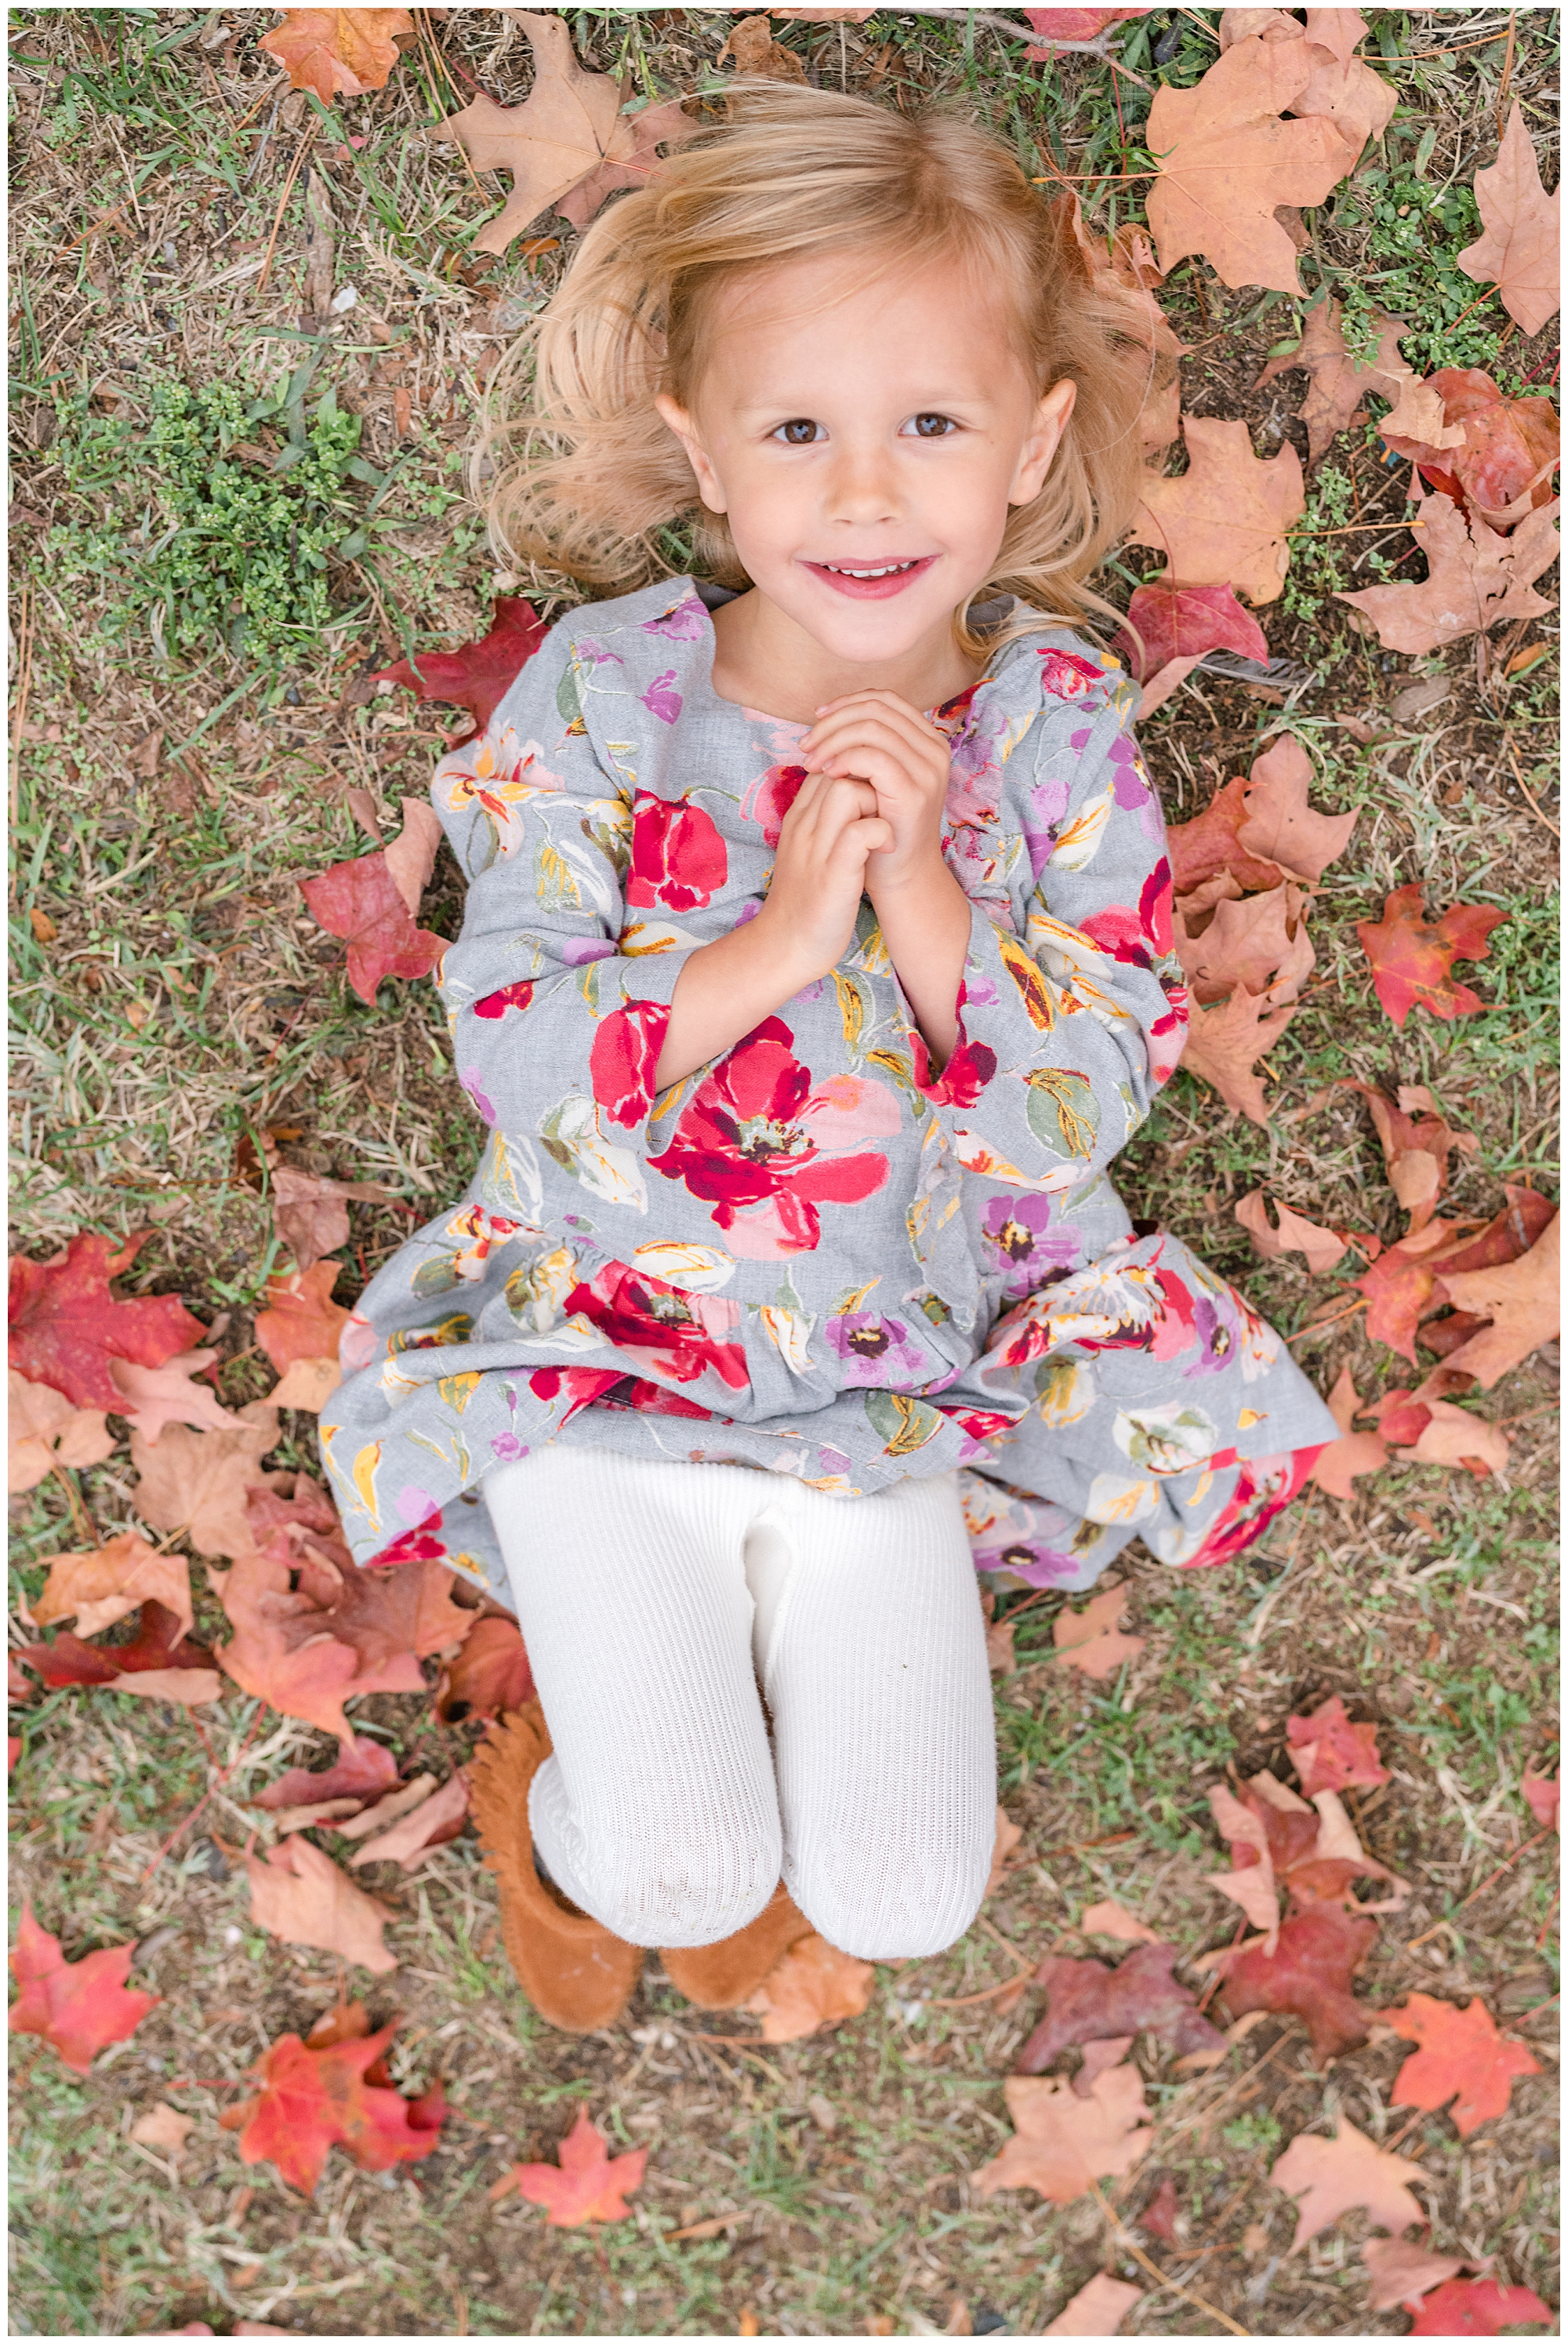 A blonde girl in a gray dress plays in fallen leaves during a fall family session in Alexandria, Virginia.